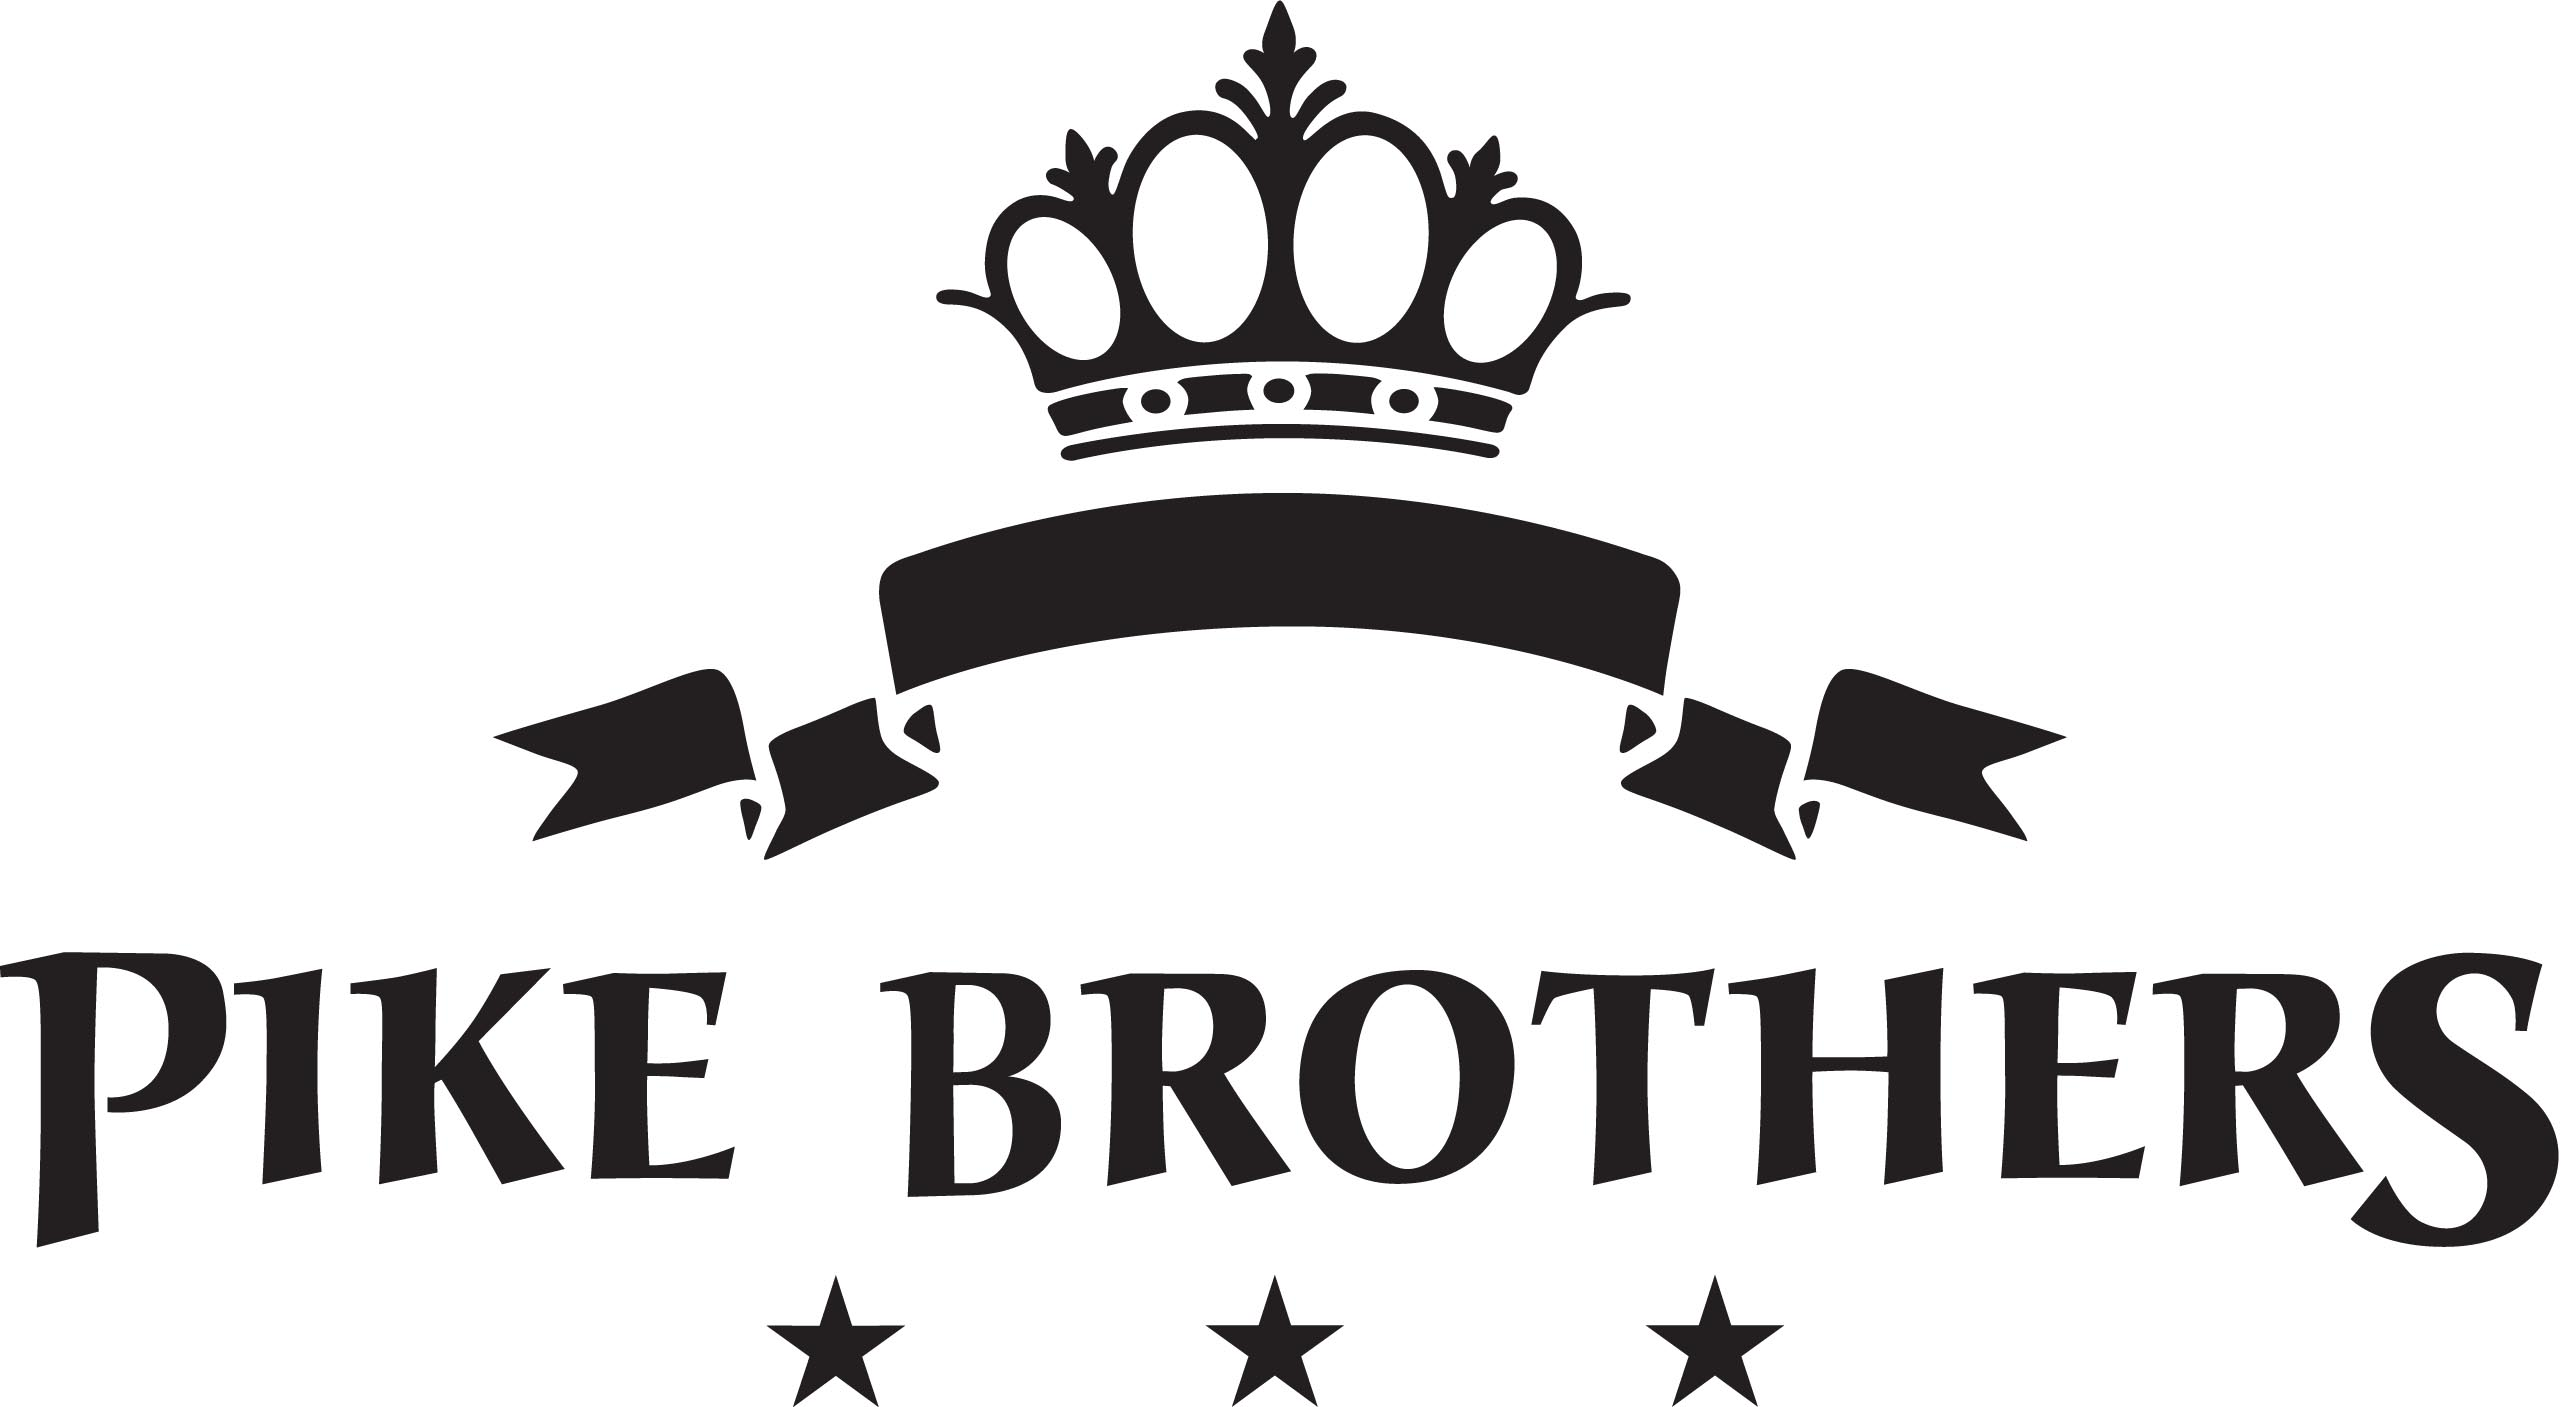 Pike Brothers-Logo-Krone